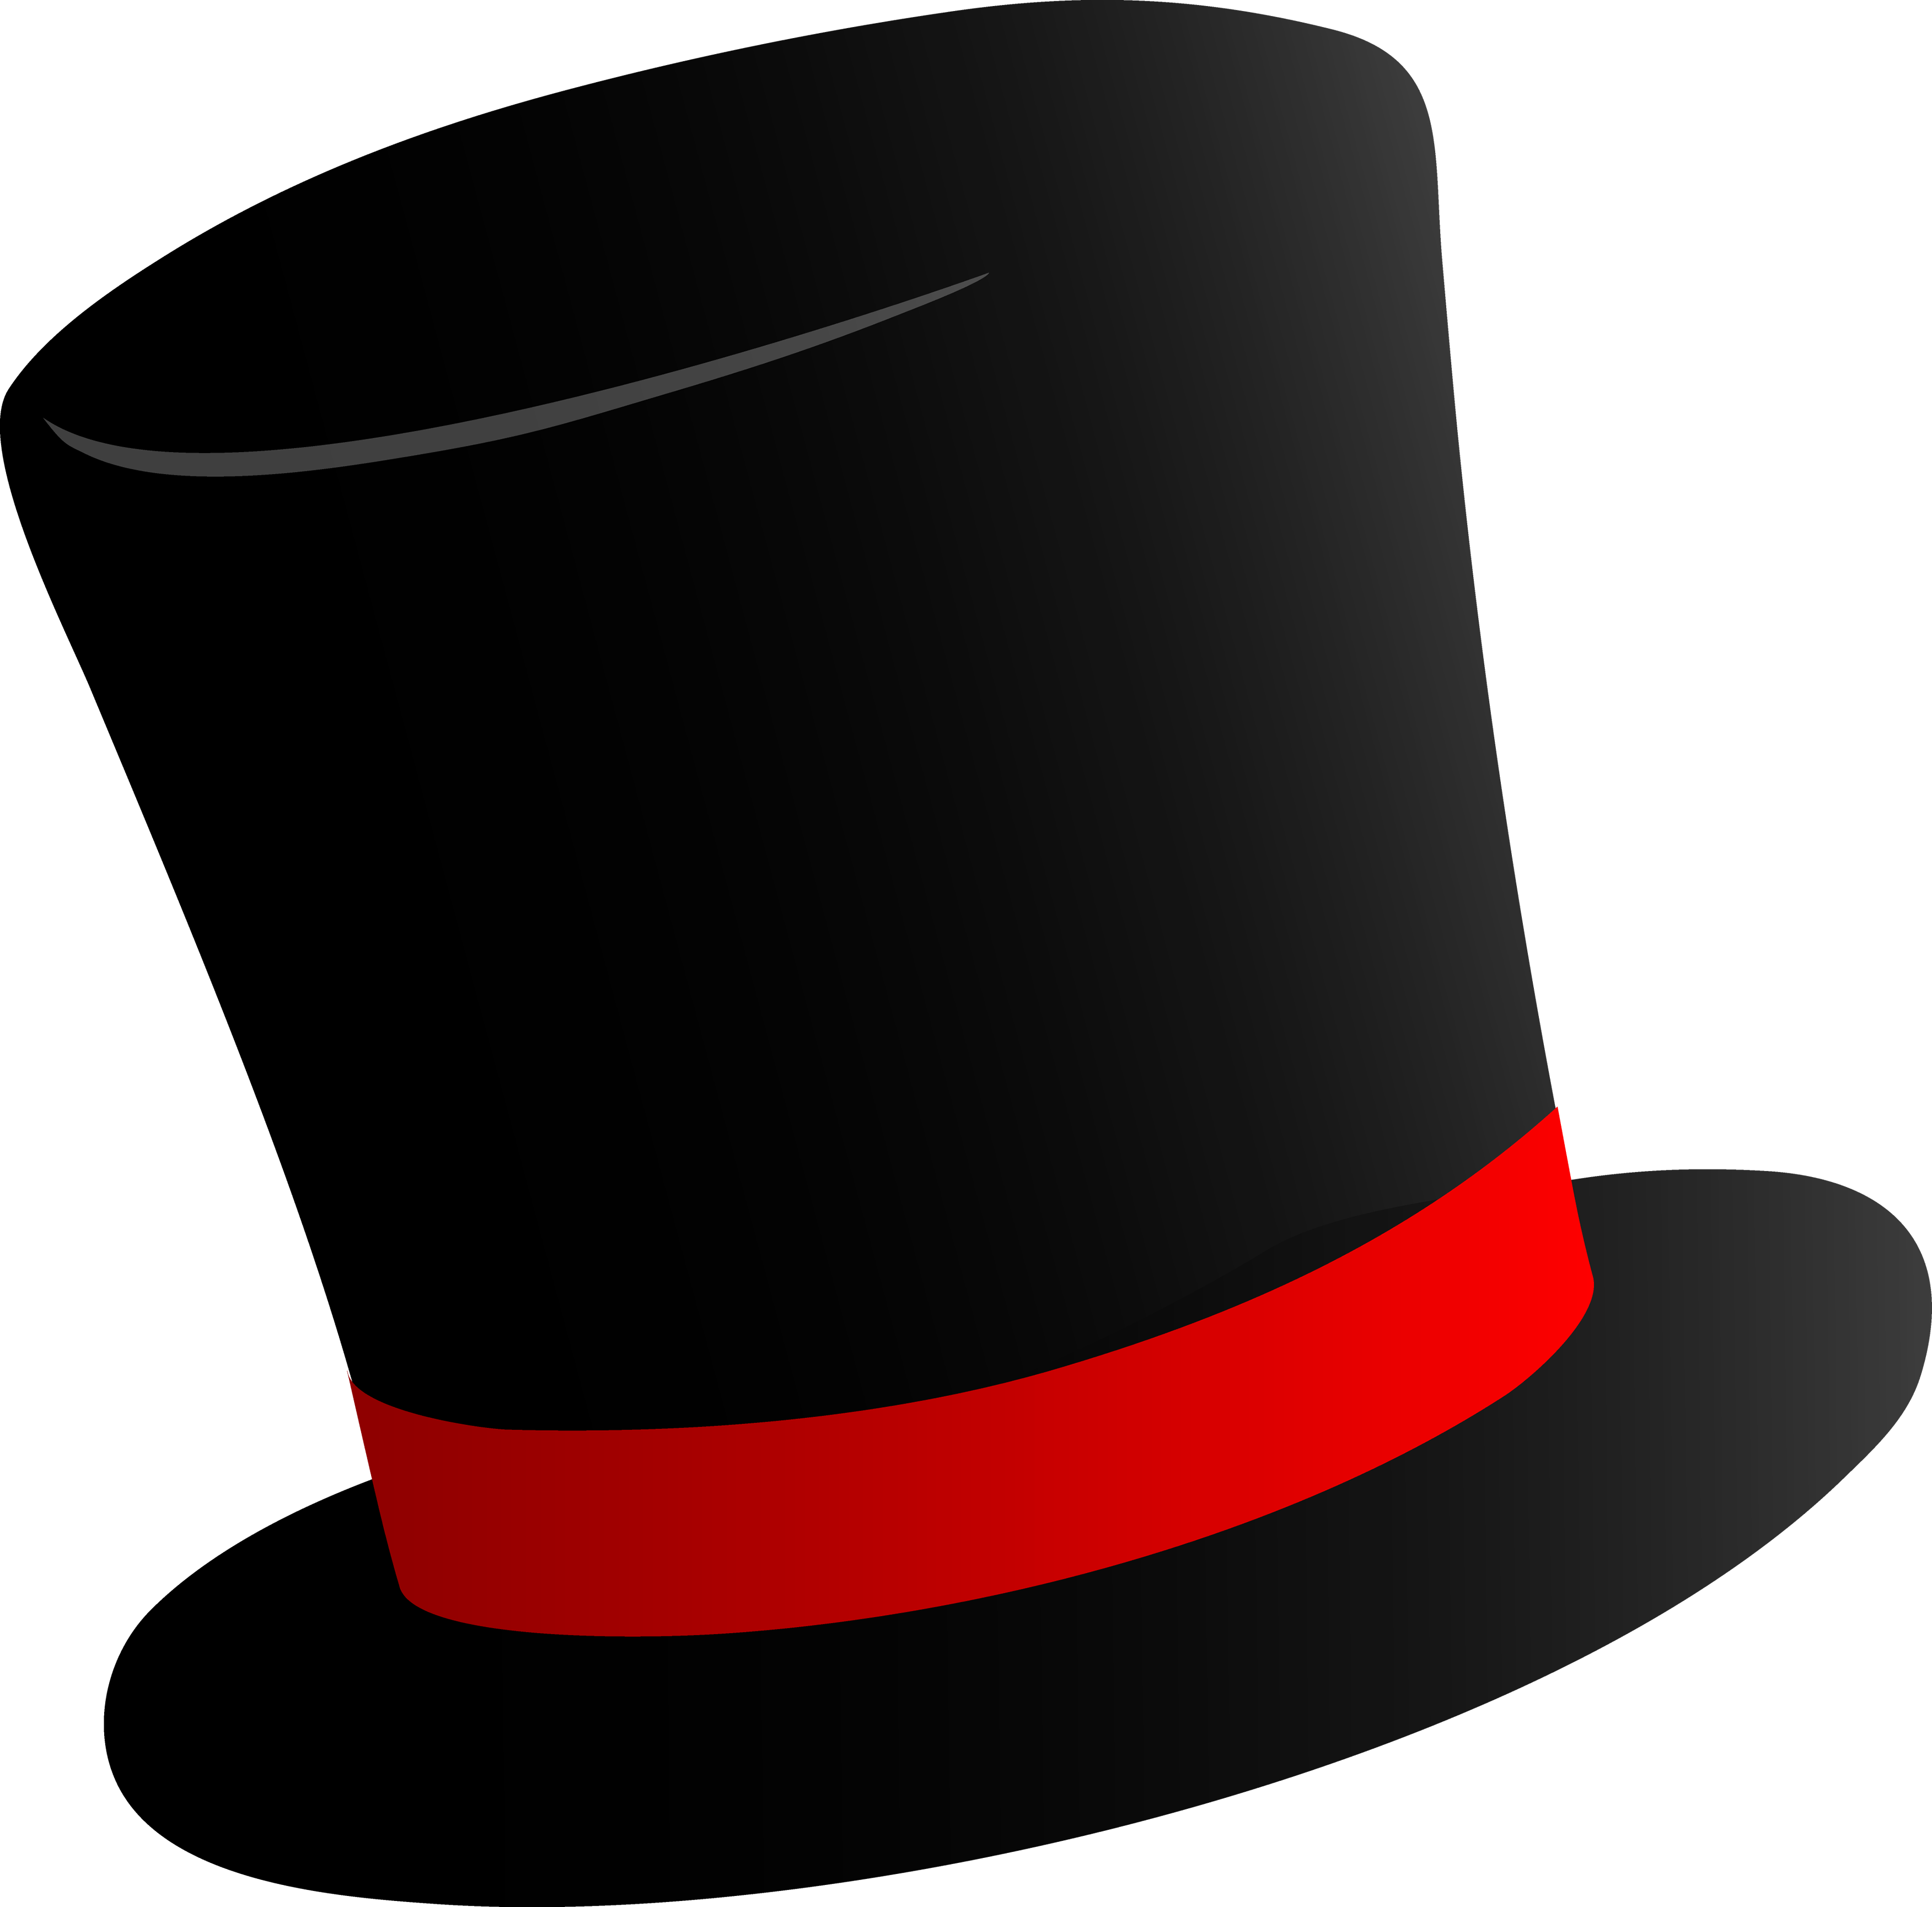 Cap clipart gangster. Hat png images free